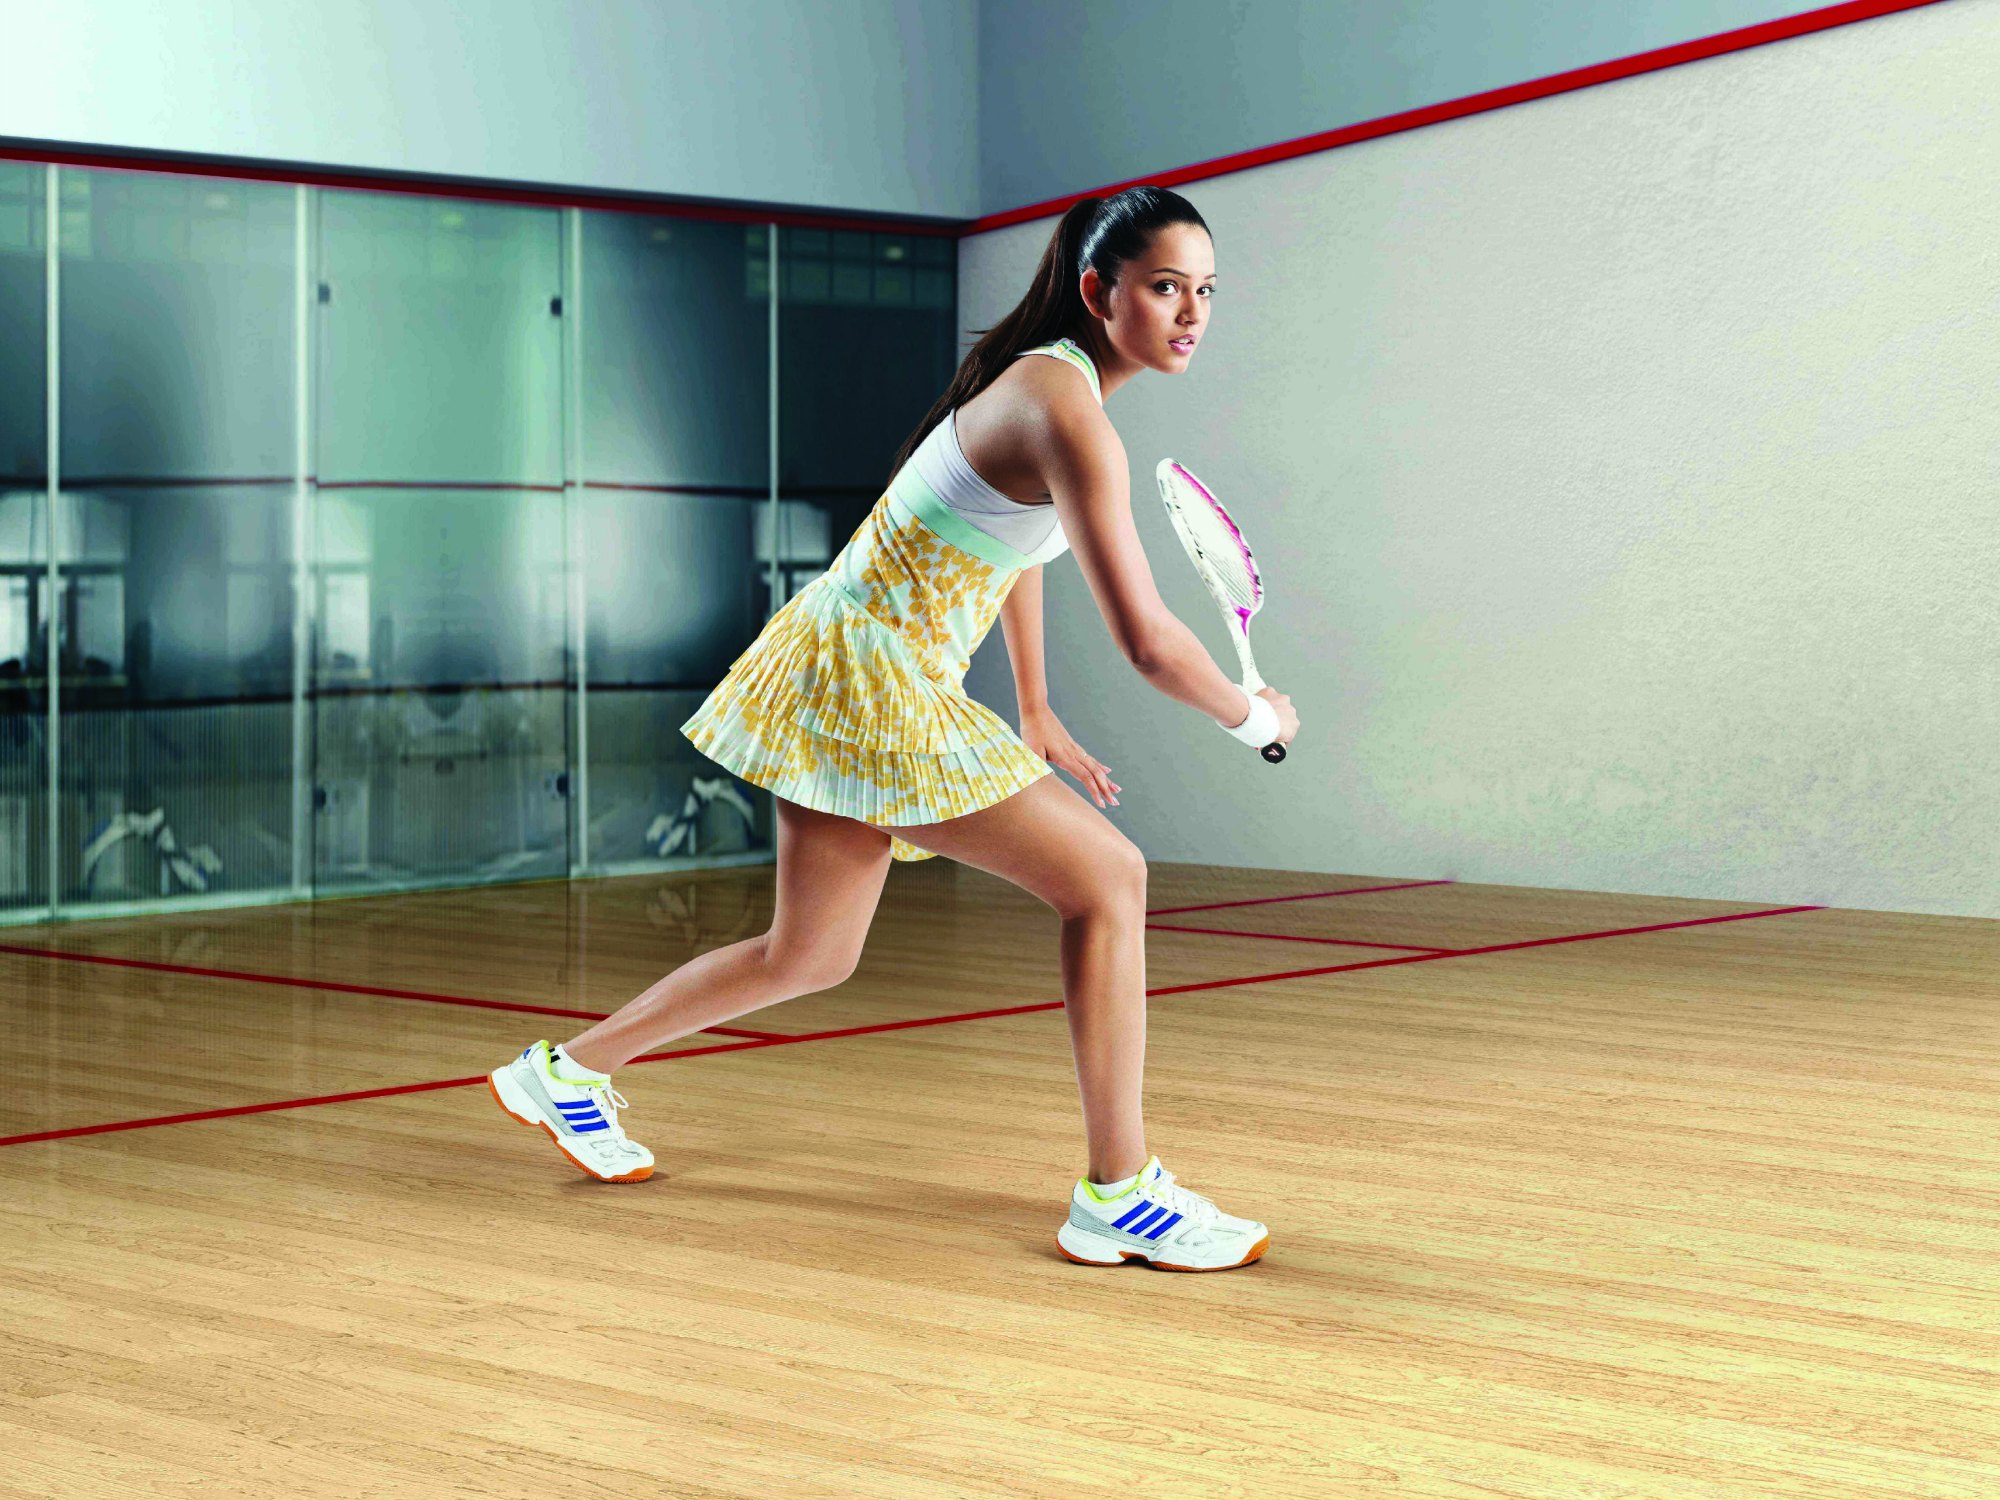 Indian Squash Poster Girl Fighting For Equality